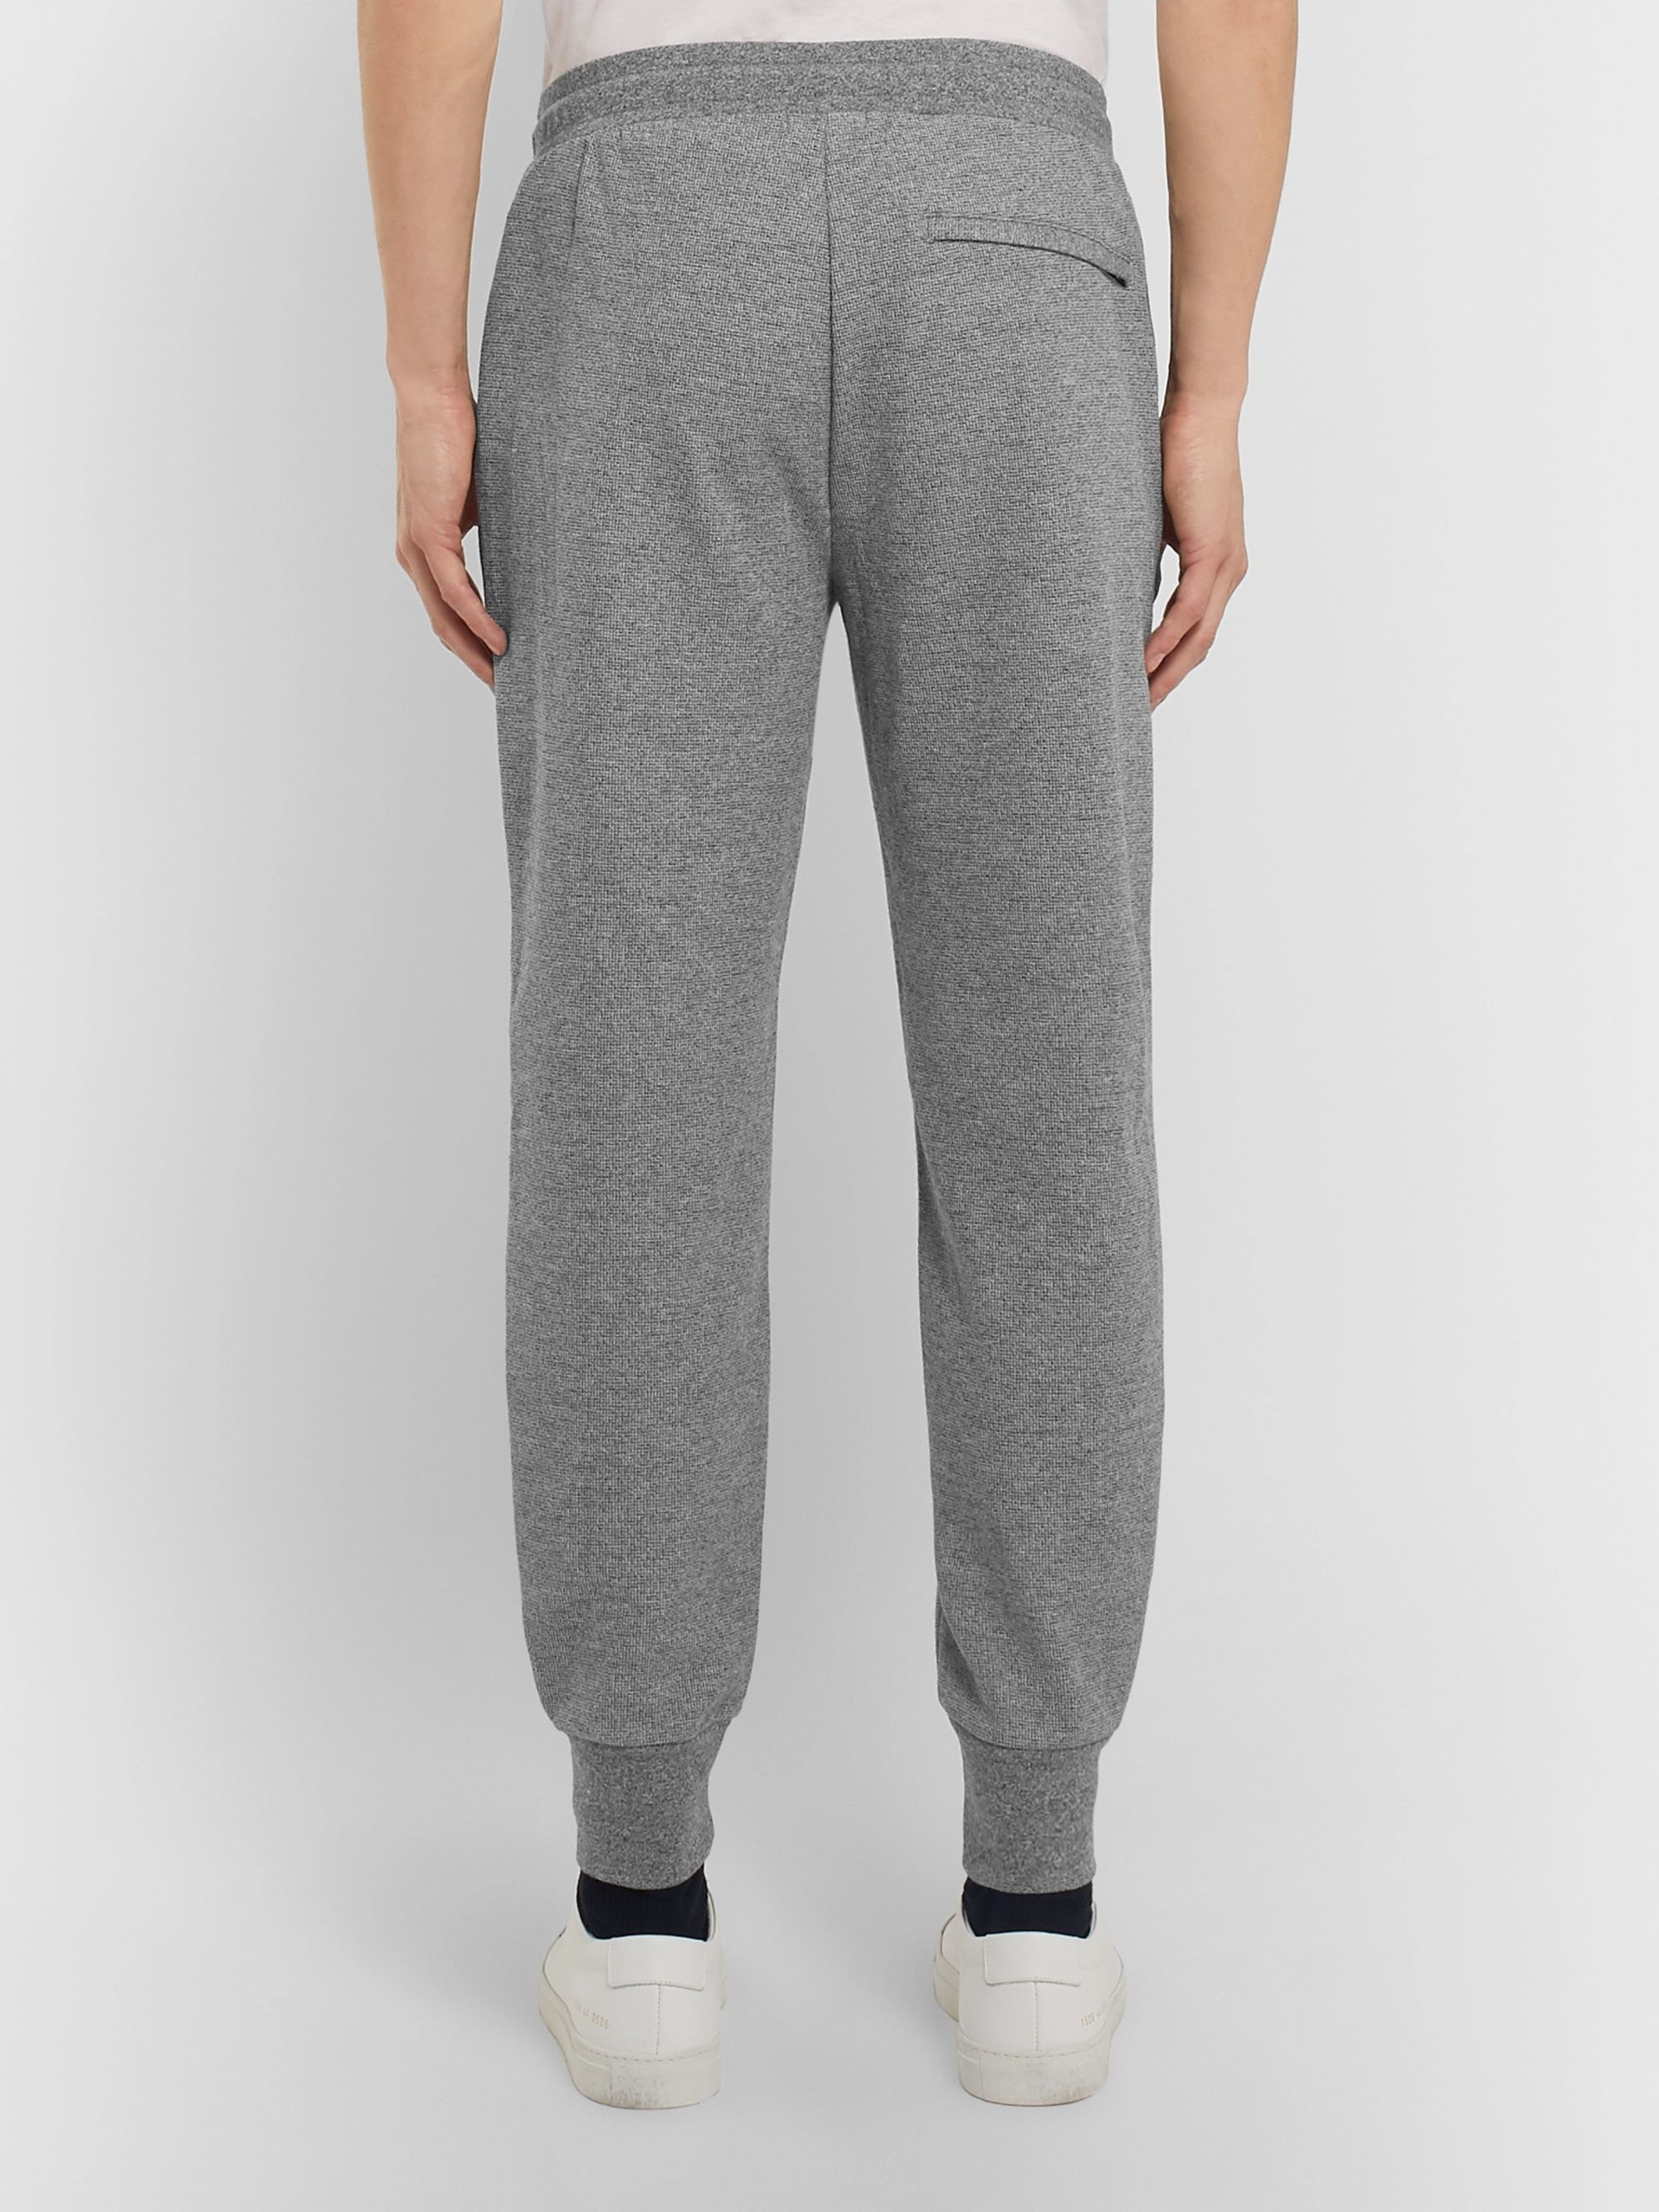 Theory Essential Slim-Fit Tapered Mélange Stretch-Knit Sweatpants